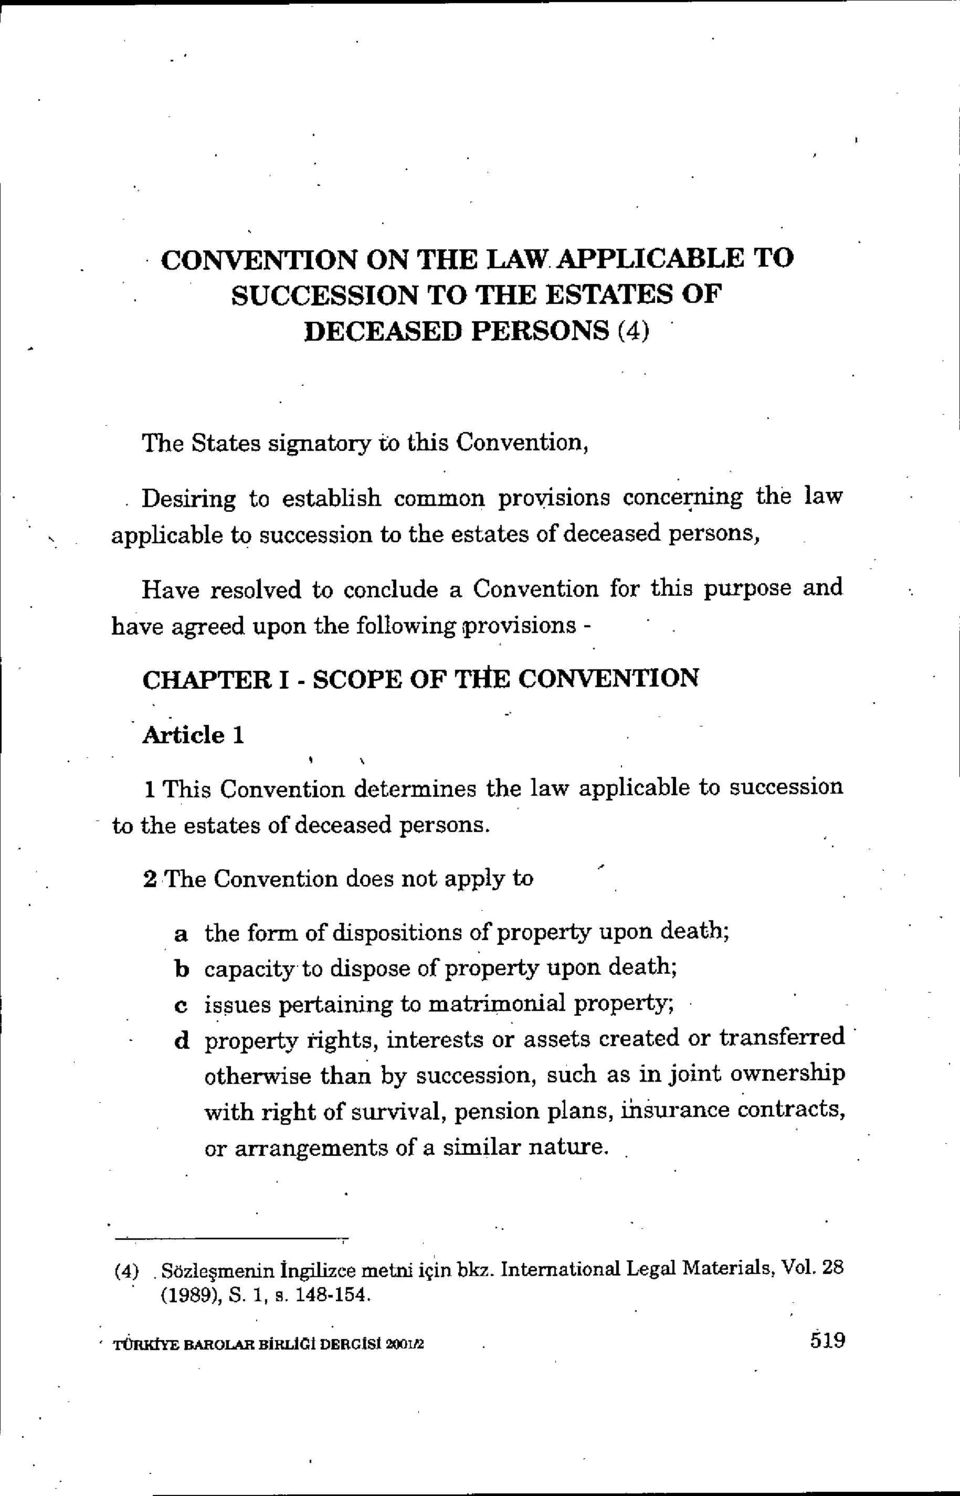 estates af deceased persons, Have resalved ta conclude a Convention far this purpose and have agreed upon the foliowing provisions - CHAPTER 1- SCOPE OF THE CONVENTION Article 1 1 This Convention